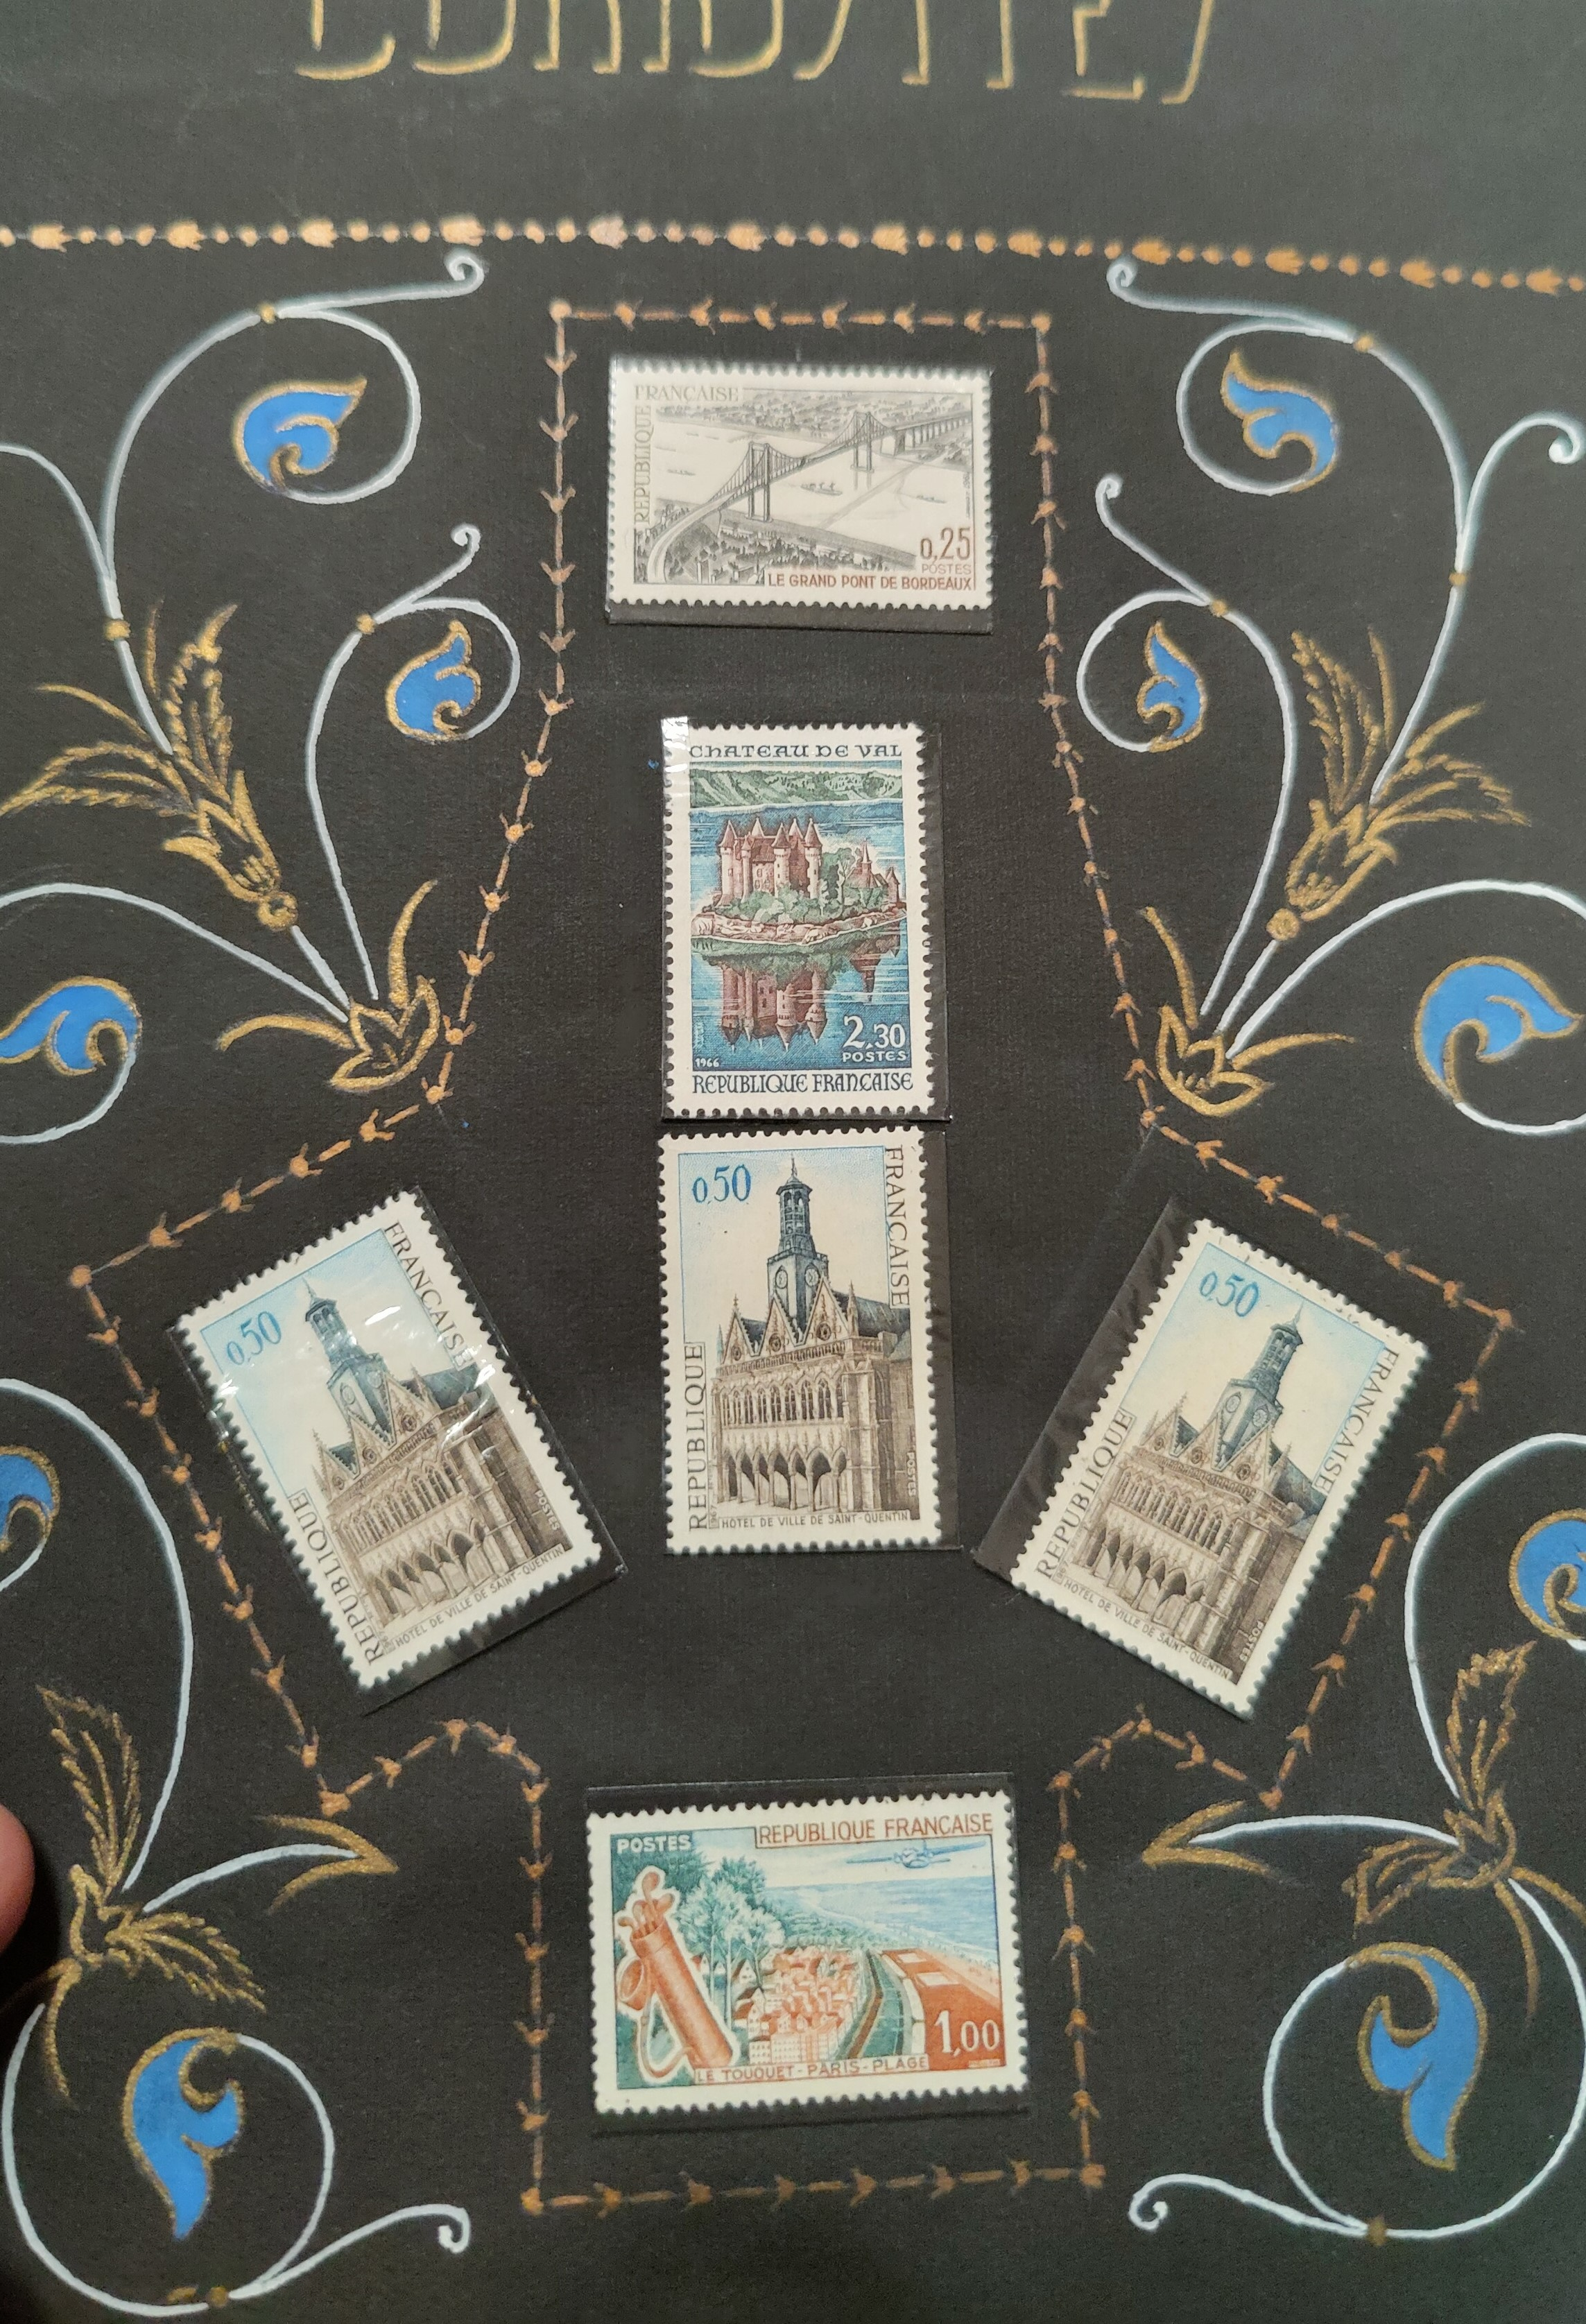 A decorated album with French issues, 3 other albums. - Image 5 of 7